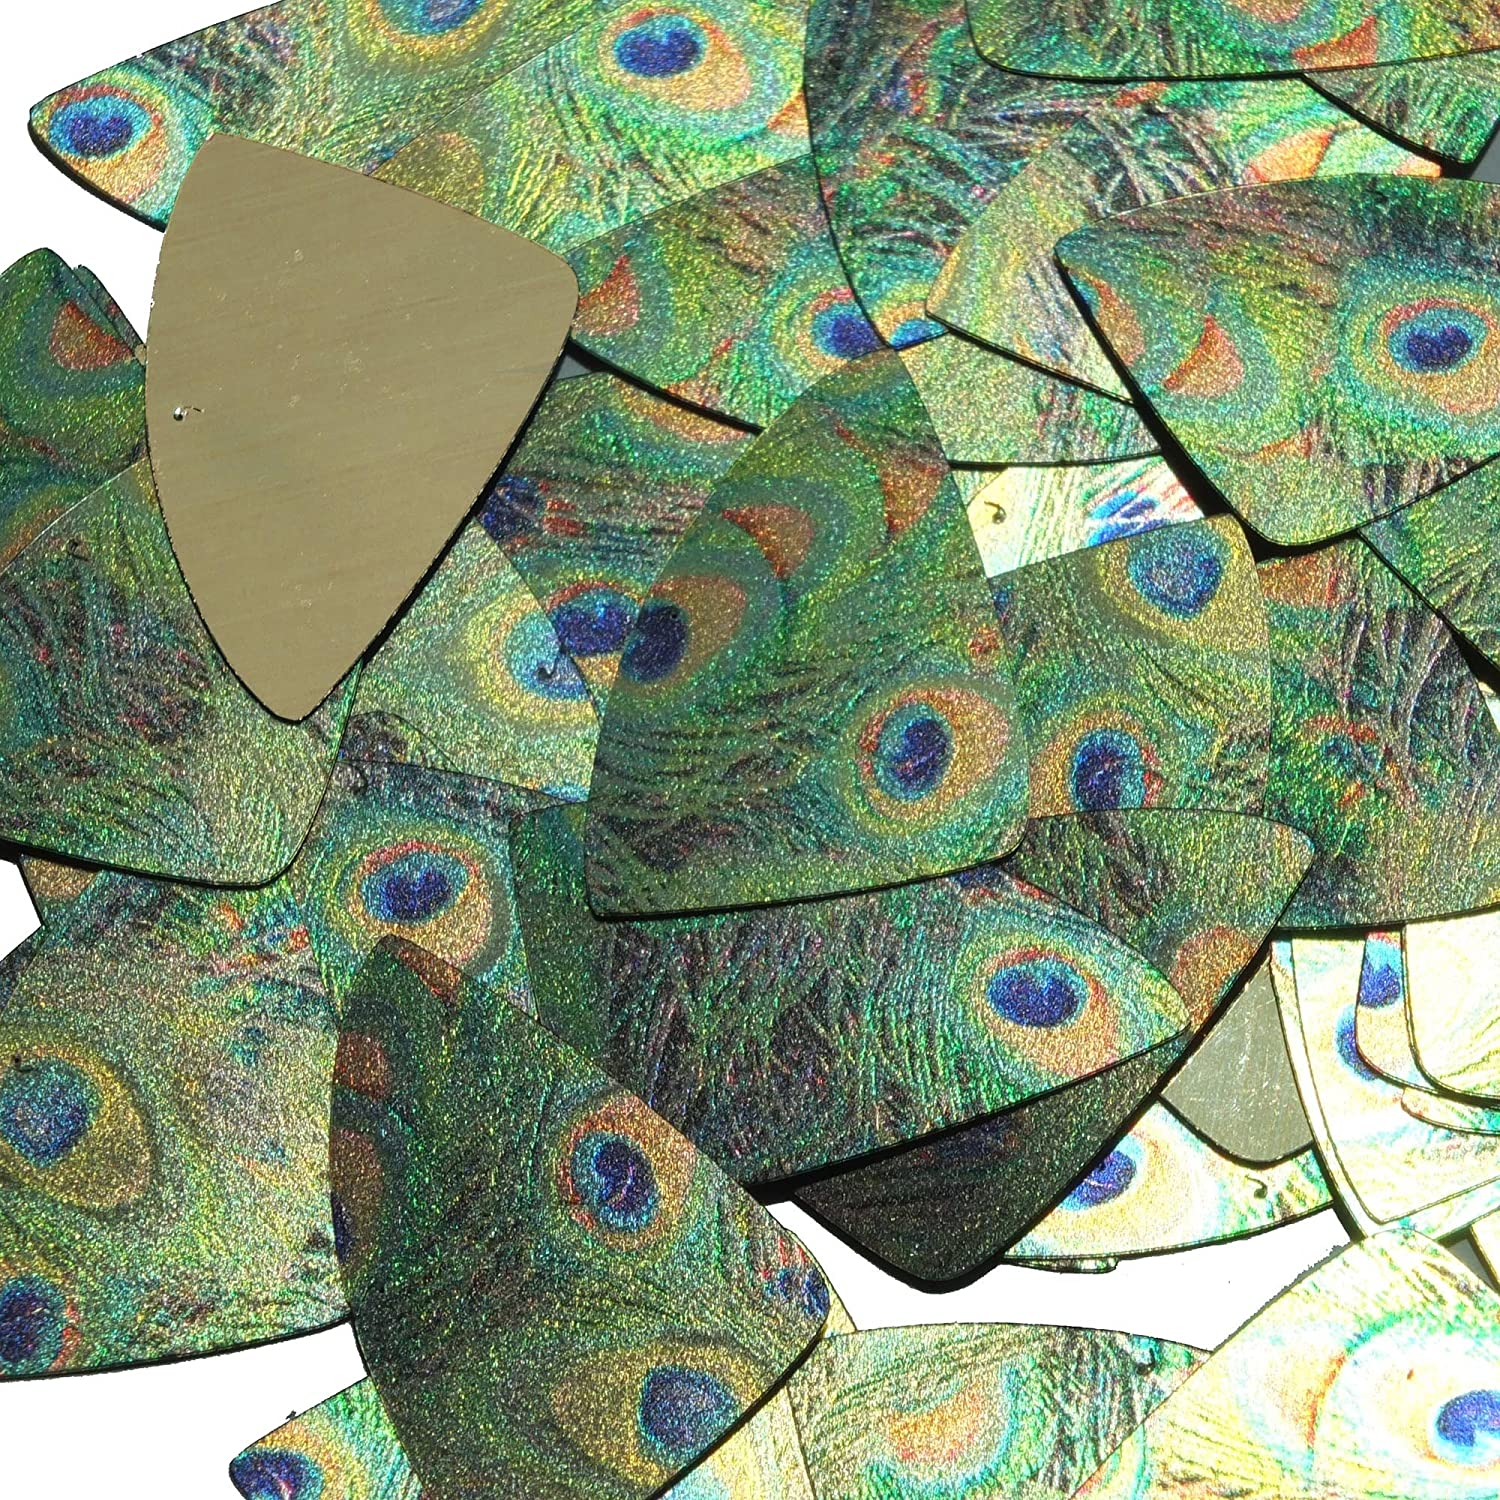 Peacock Feather Eye Sequin Fishscale Fin 1.5 inch Metallic Couture Loose Large Paillettes